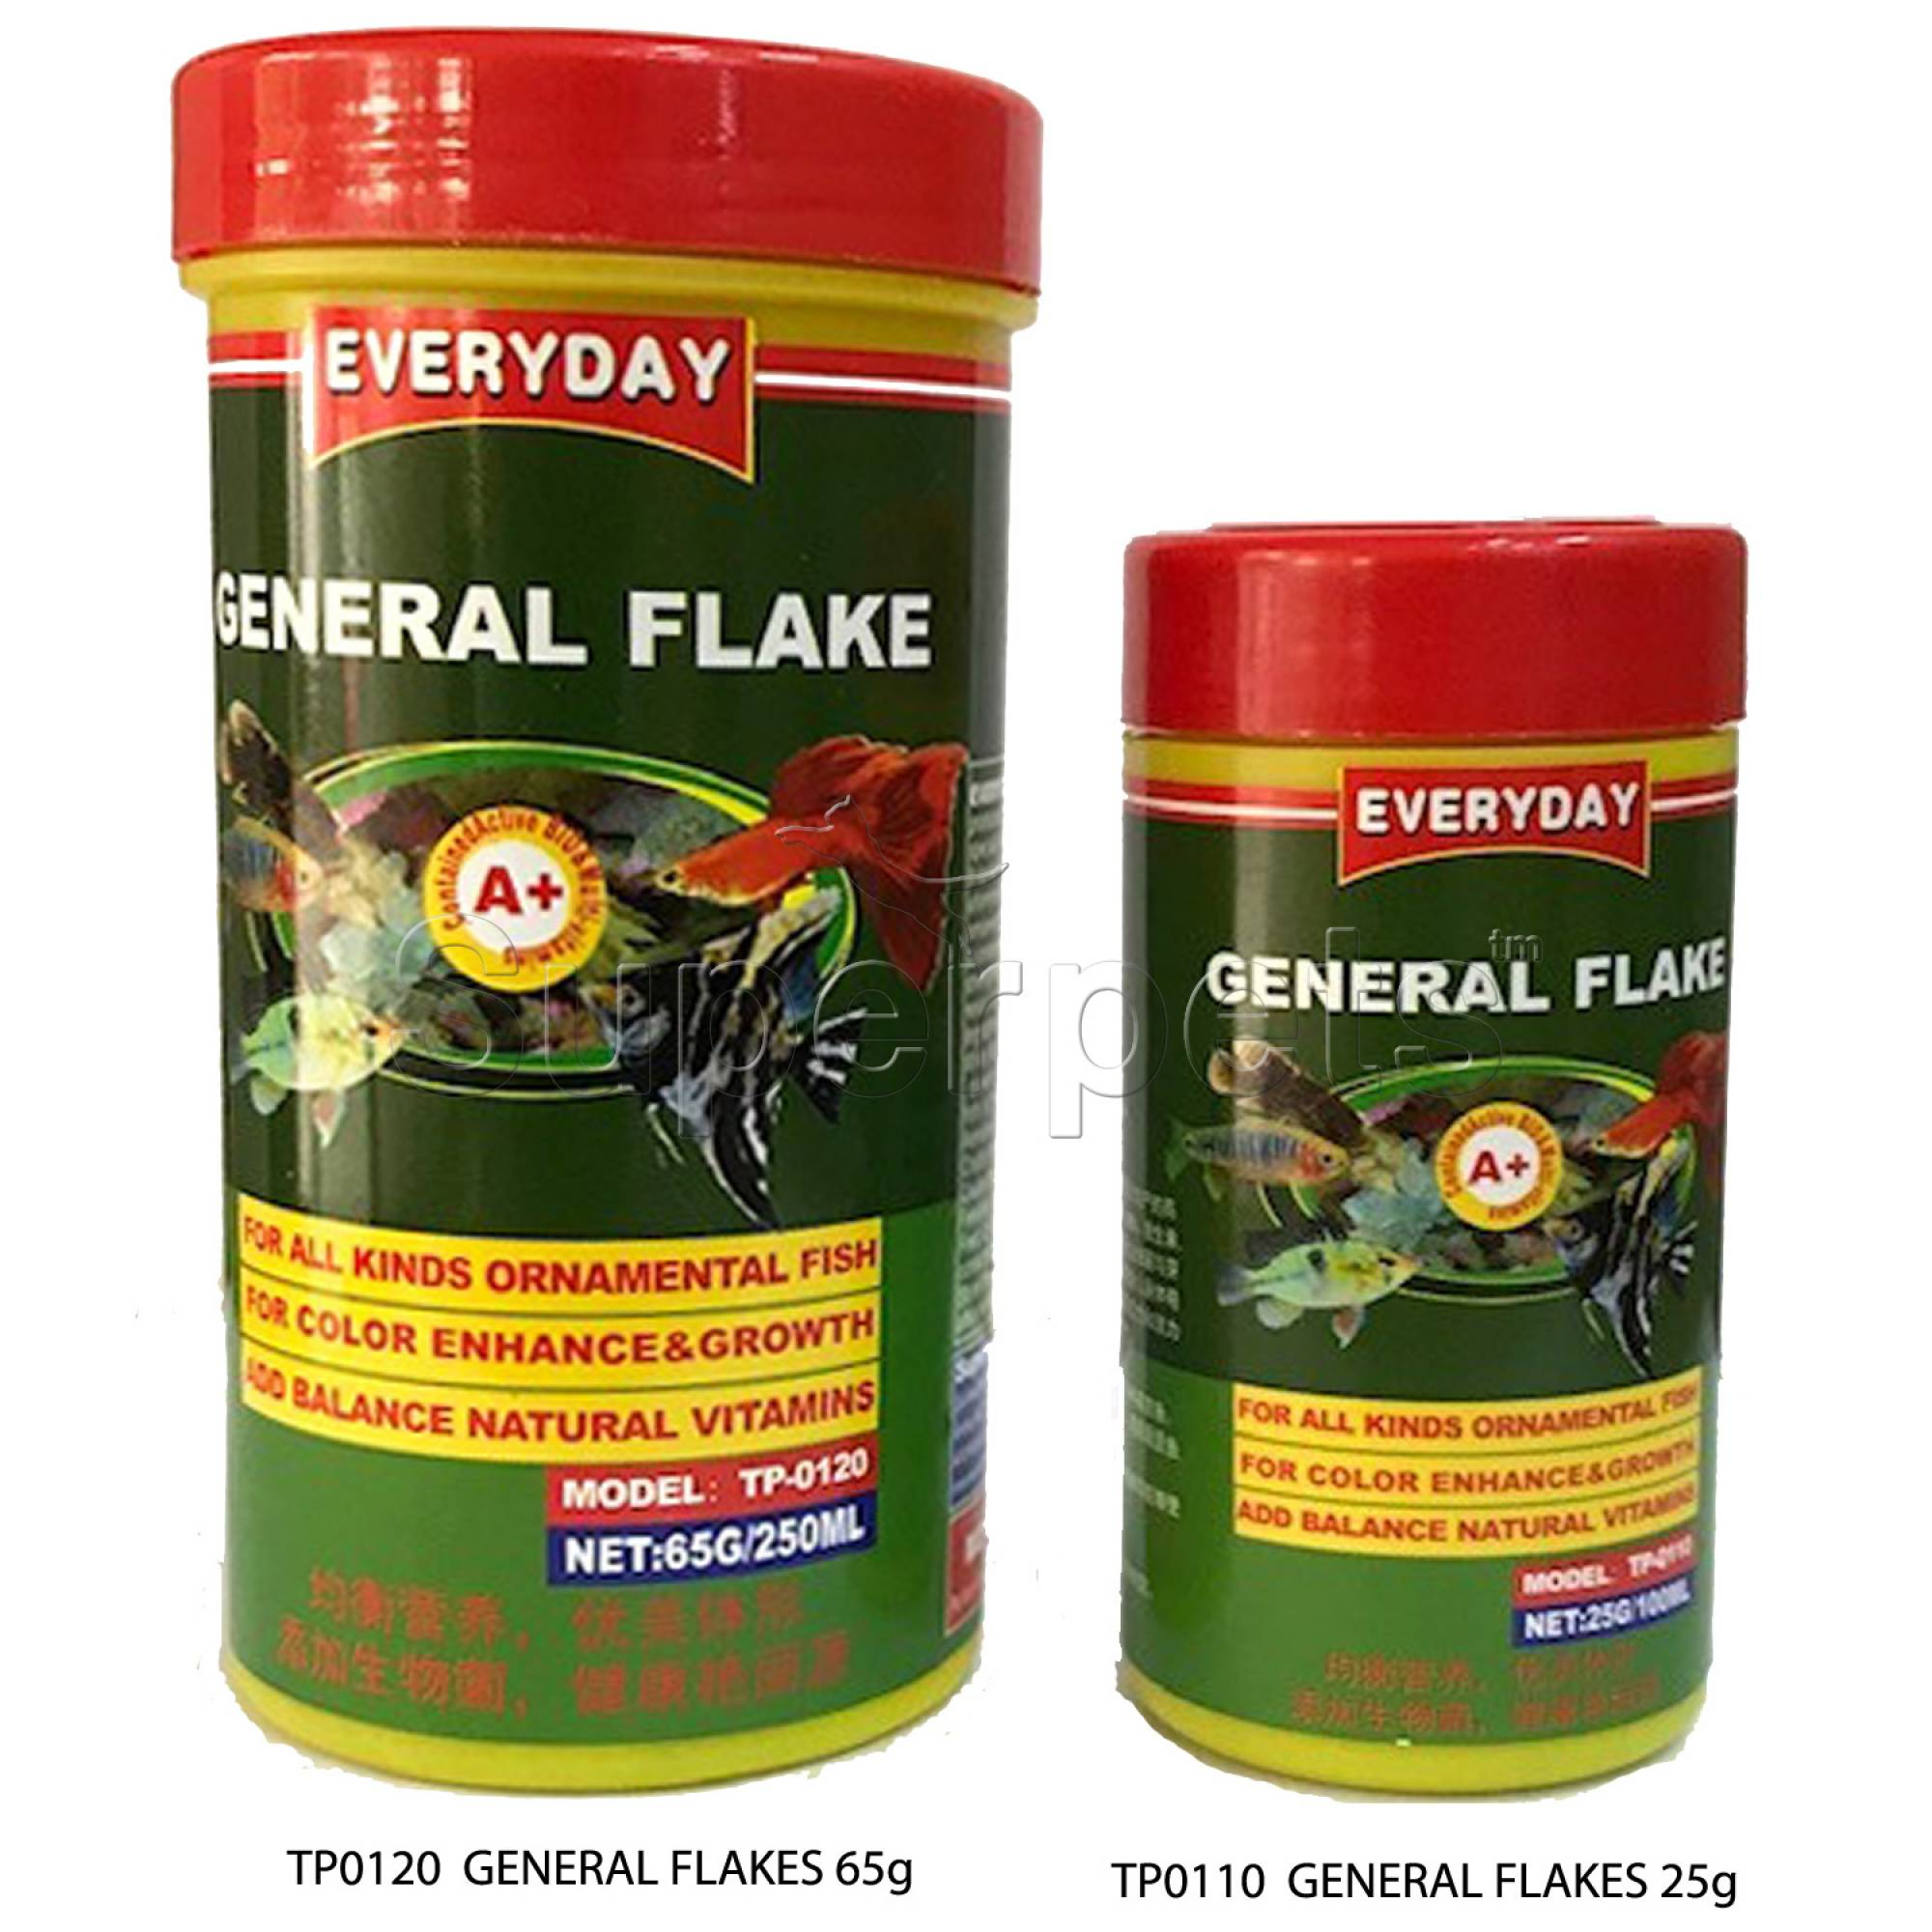 Everyday General Flakes Fish Food 25g (TP0110)